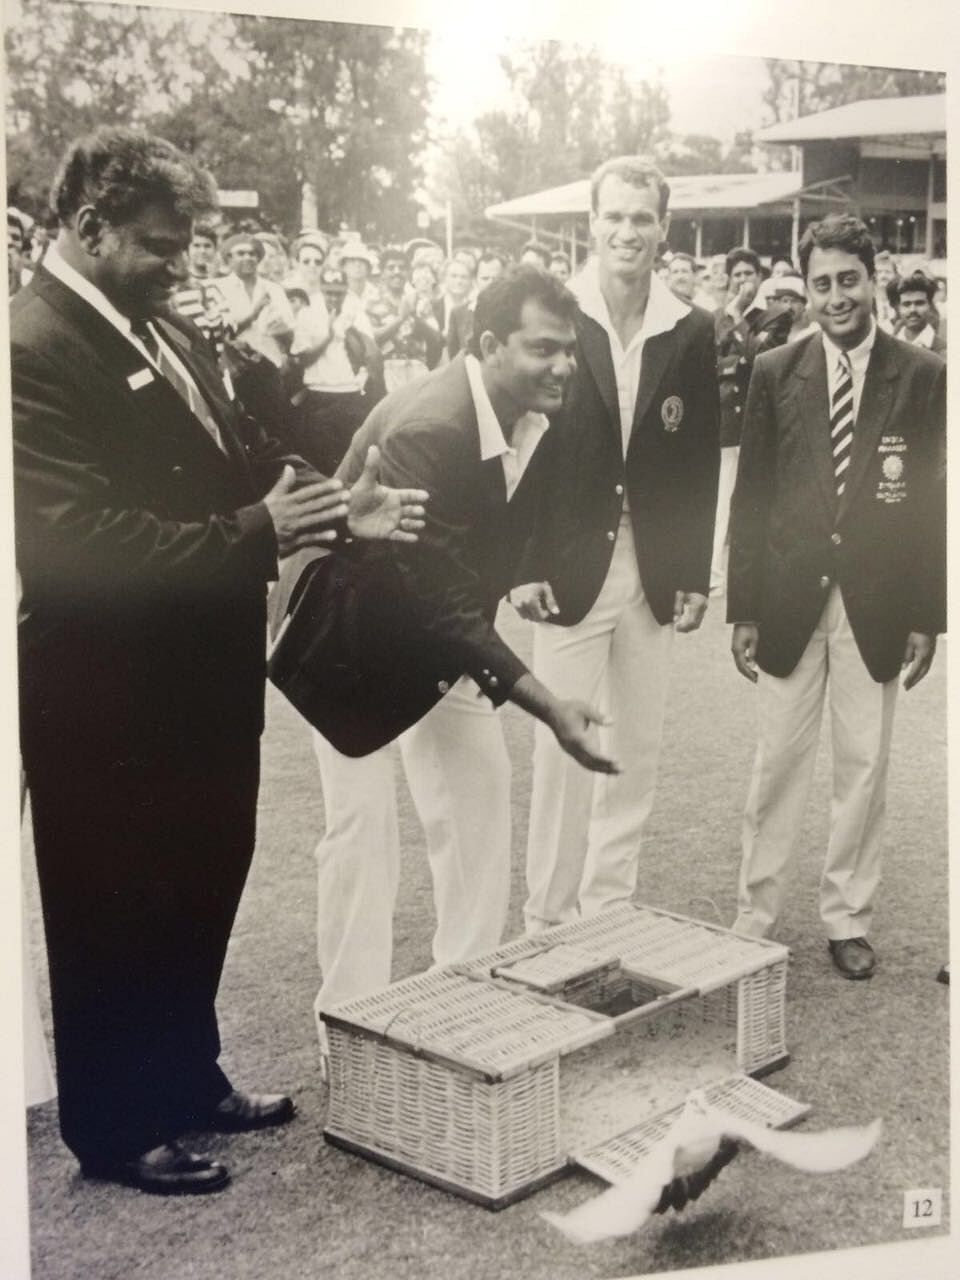 India became the first country to tour South Africa post apartheid. Mohammad Azharuddin led the Indian team on a tour that was historic and unique.